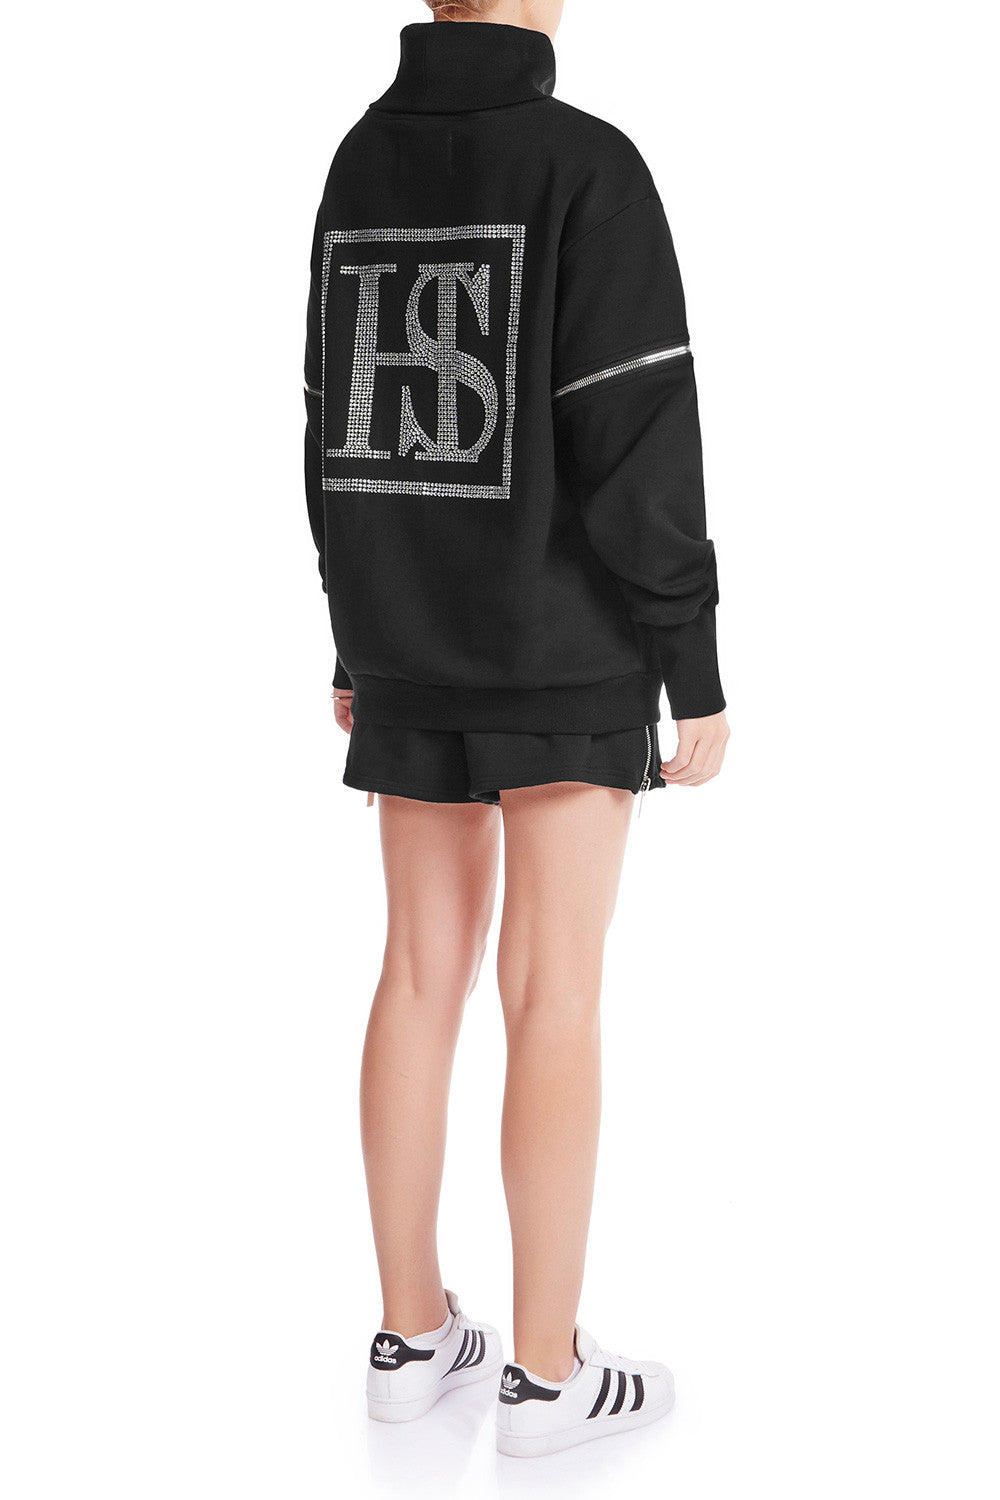 KRYSTALLE Statement Sweatshirt - BLK - HAUS OF SONG